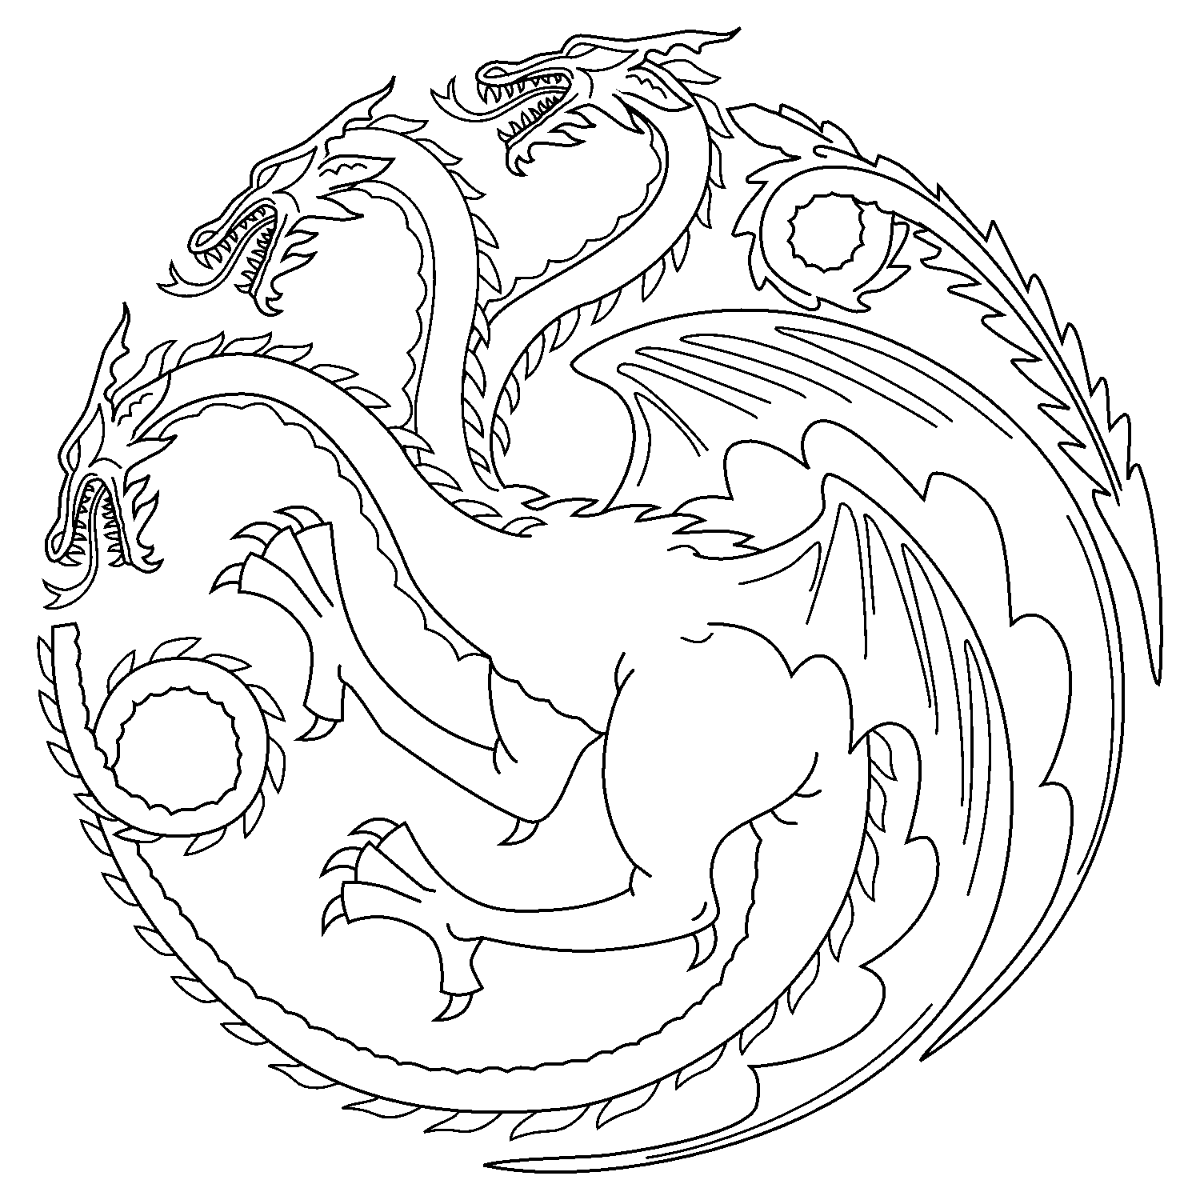 game of thrones coloring pages game of thrones coloring pages coloring pages to of thrones pages game coloring